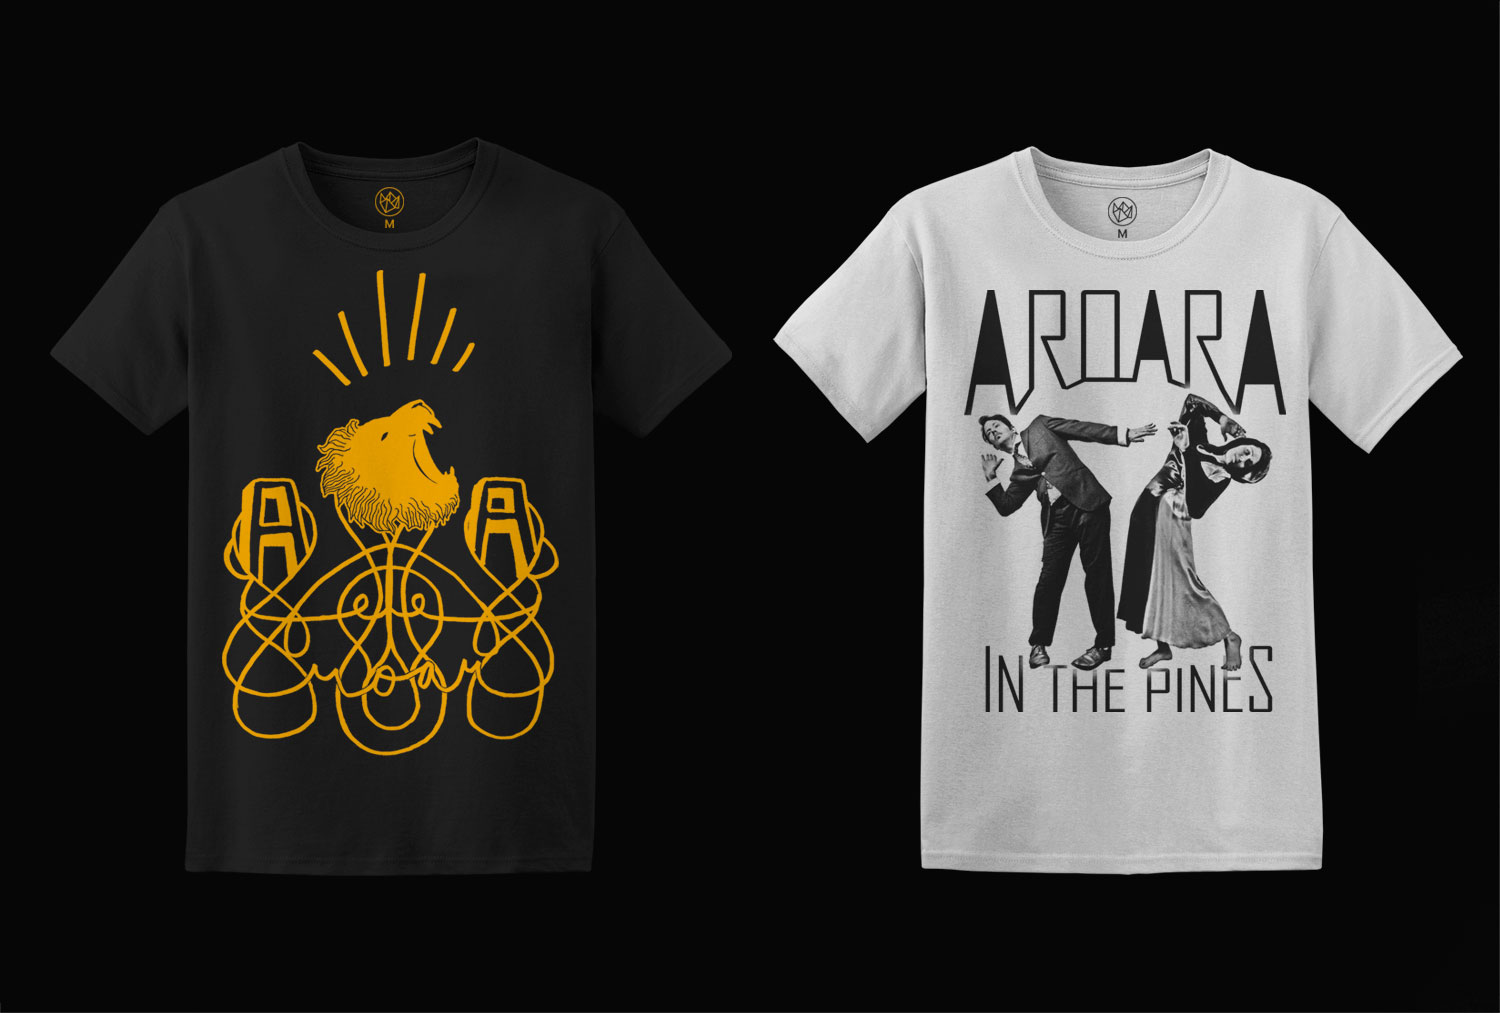 AroarA In the Pines t-shirt Design